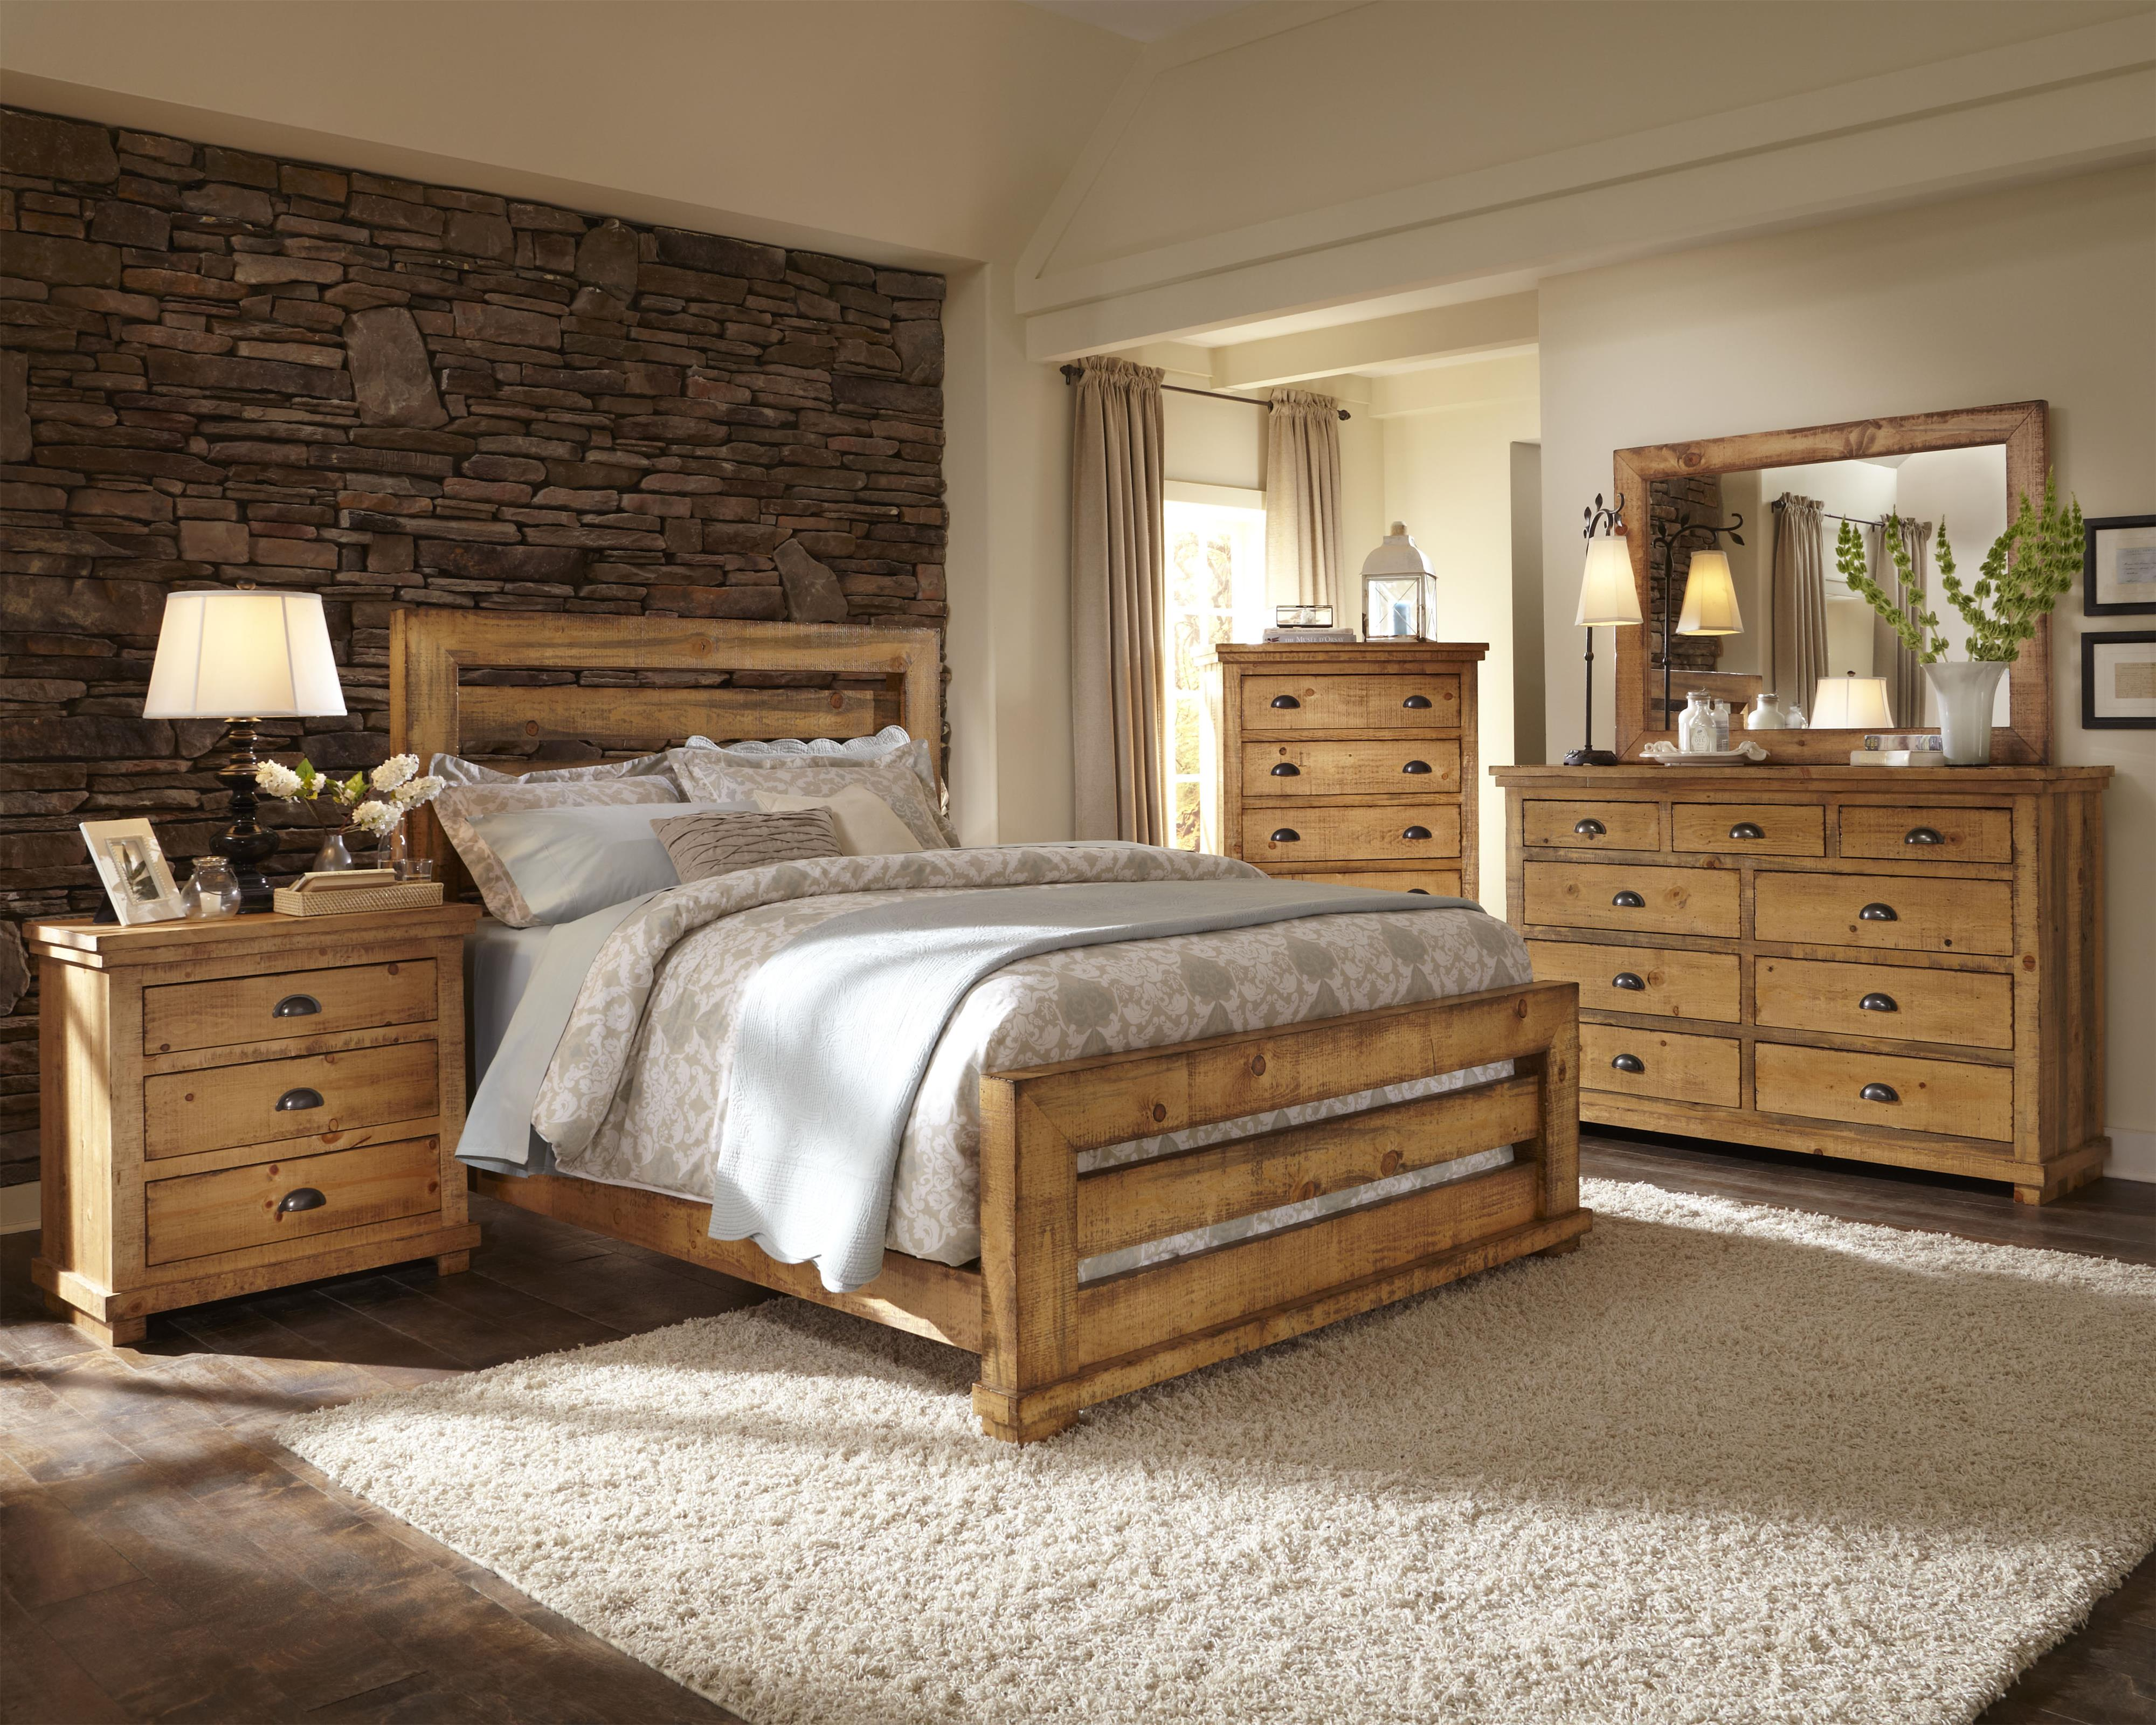 Willow King Bedroom Group by Progressive Furniture at Catalog Outlet